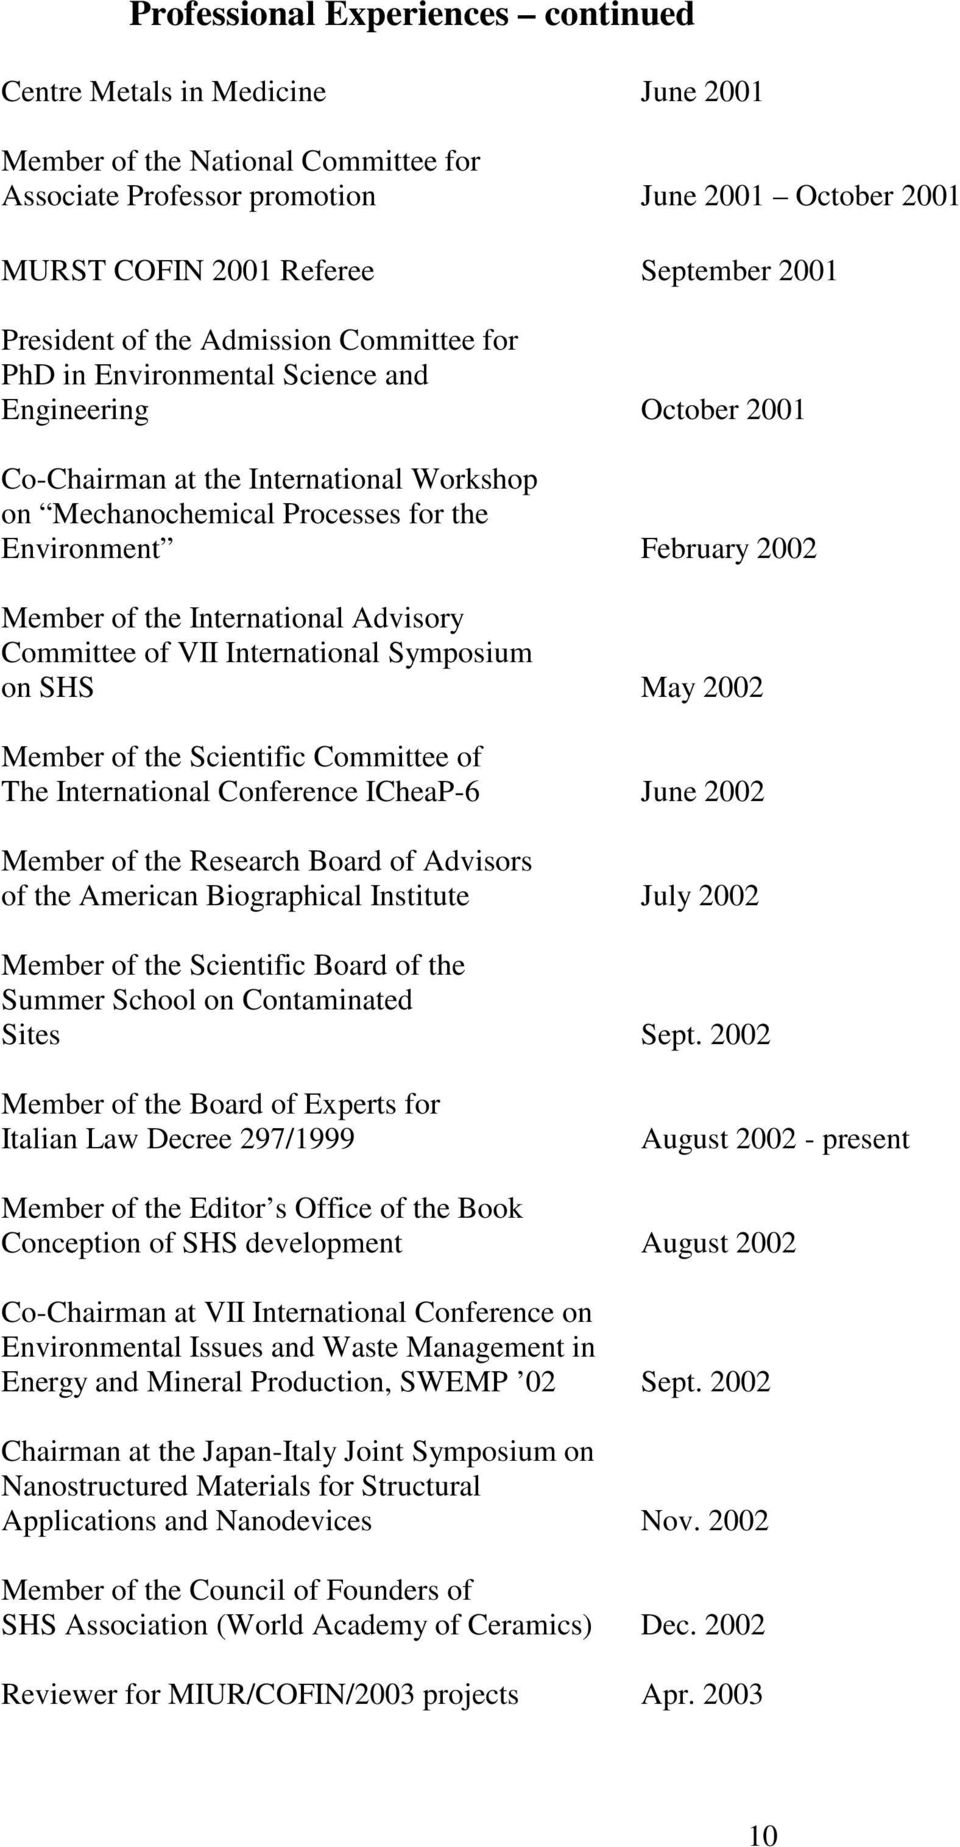 February 2002 Member of the International Advisory Committee of VII International Symposium on SHS May 2002 Member of the Scientific Committee of The International Conference ICheaP-6 June 2002